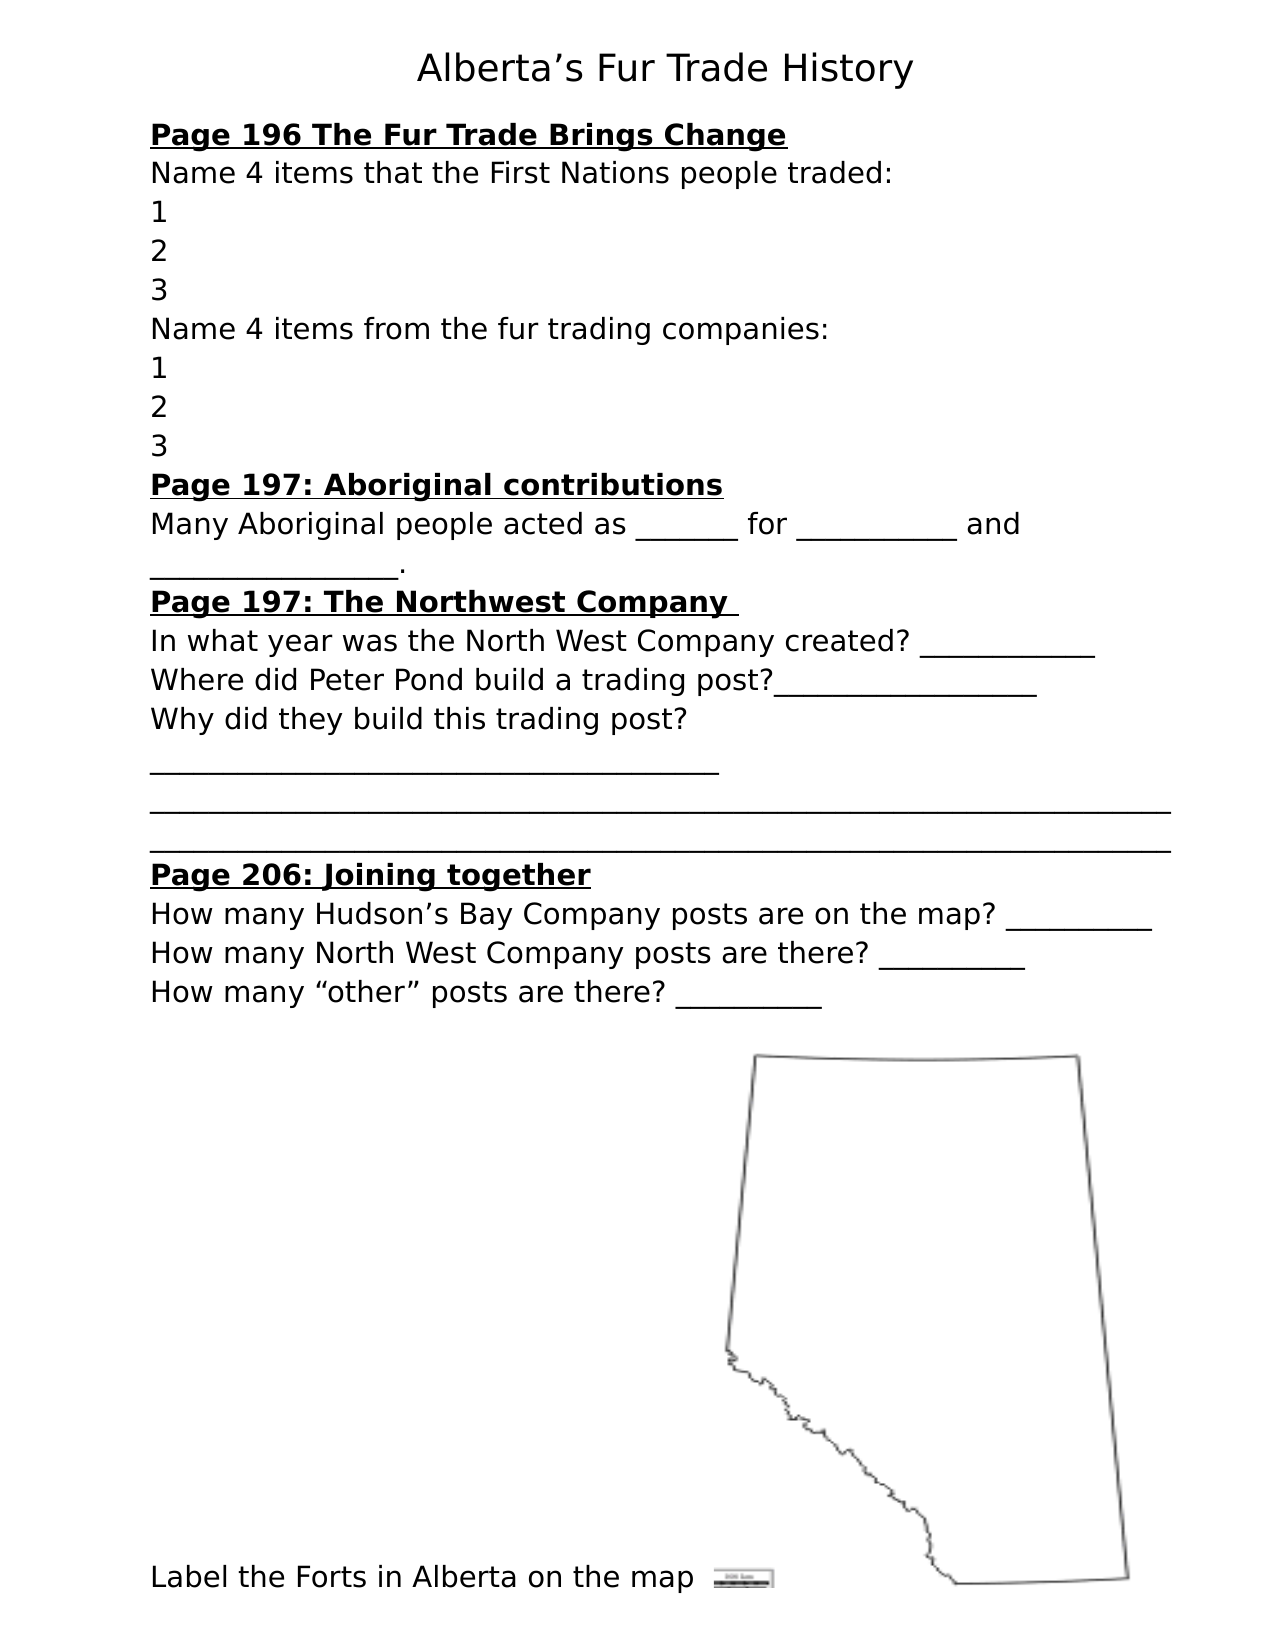 hight resolution of Our Alberta Textbook Fur Trade Resource Preview   Social studies